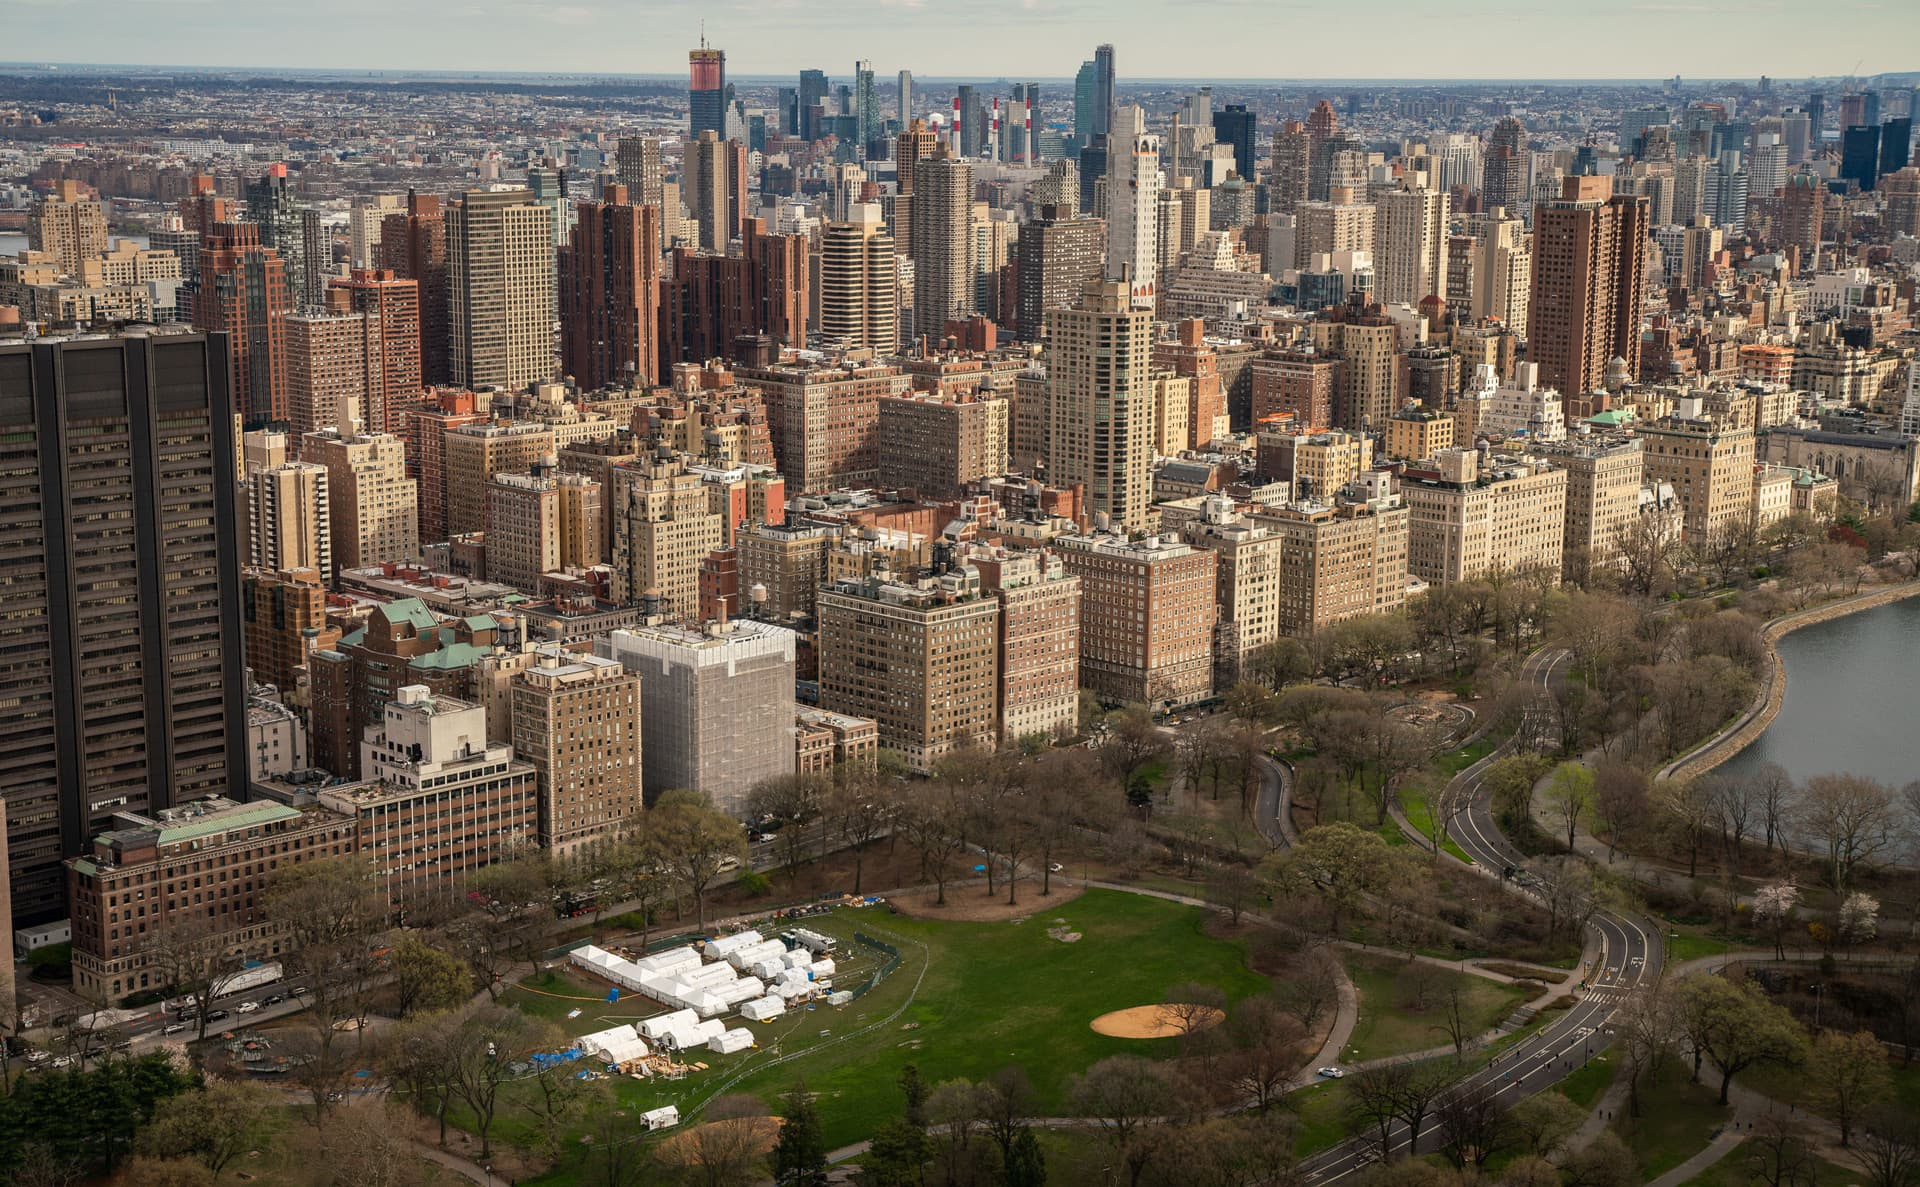 Our field hospital is set up in New York City's Central Park.